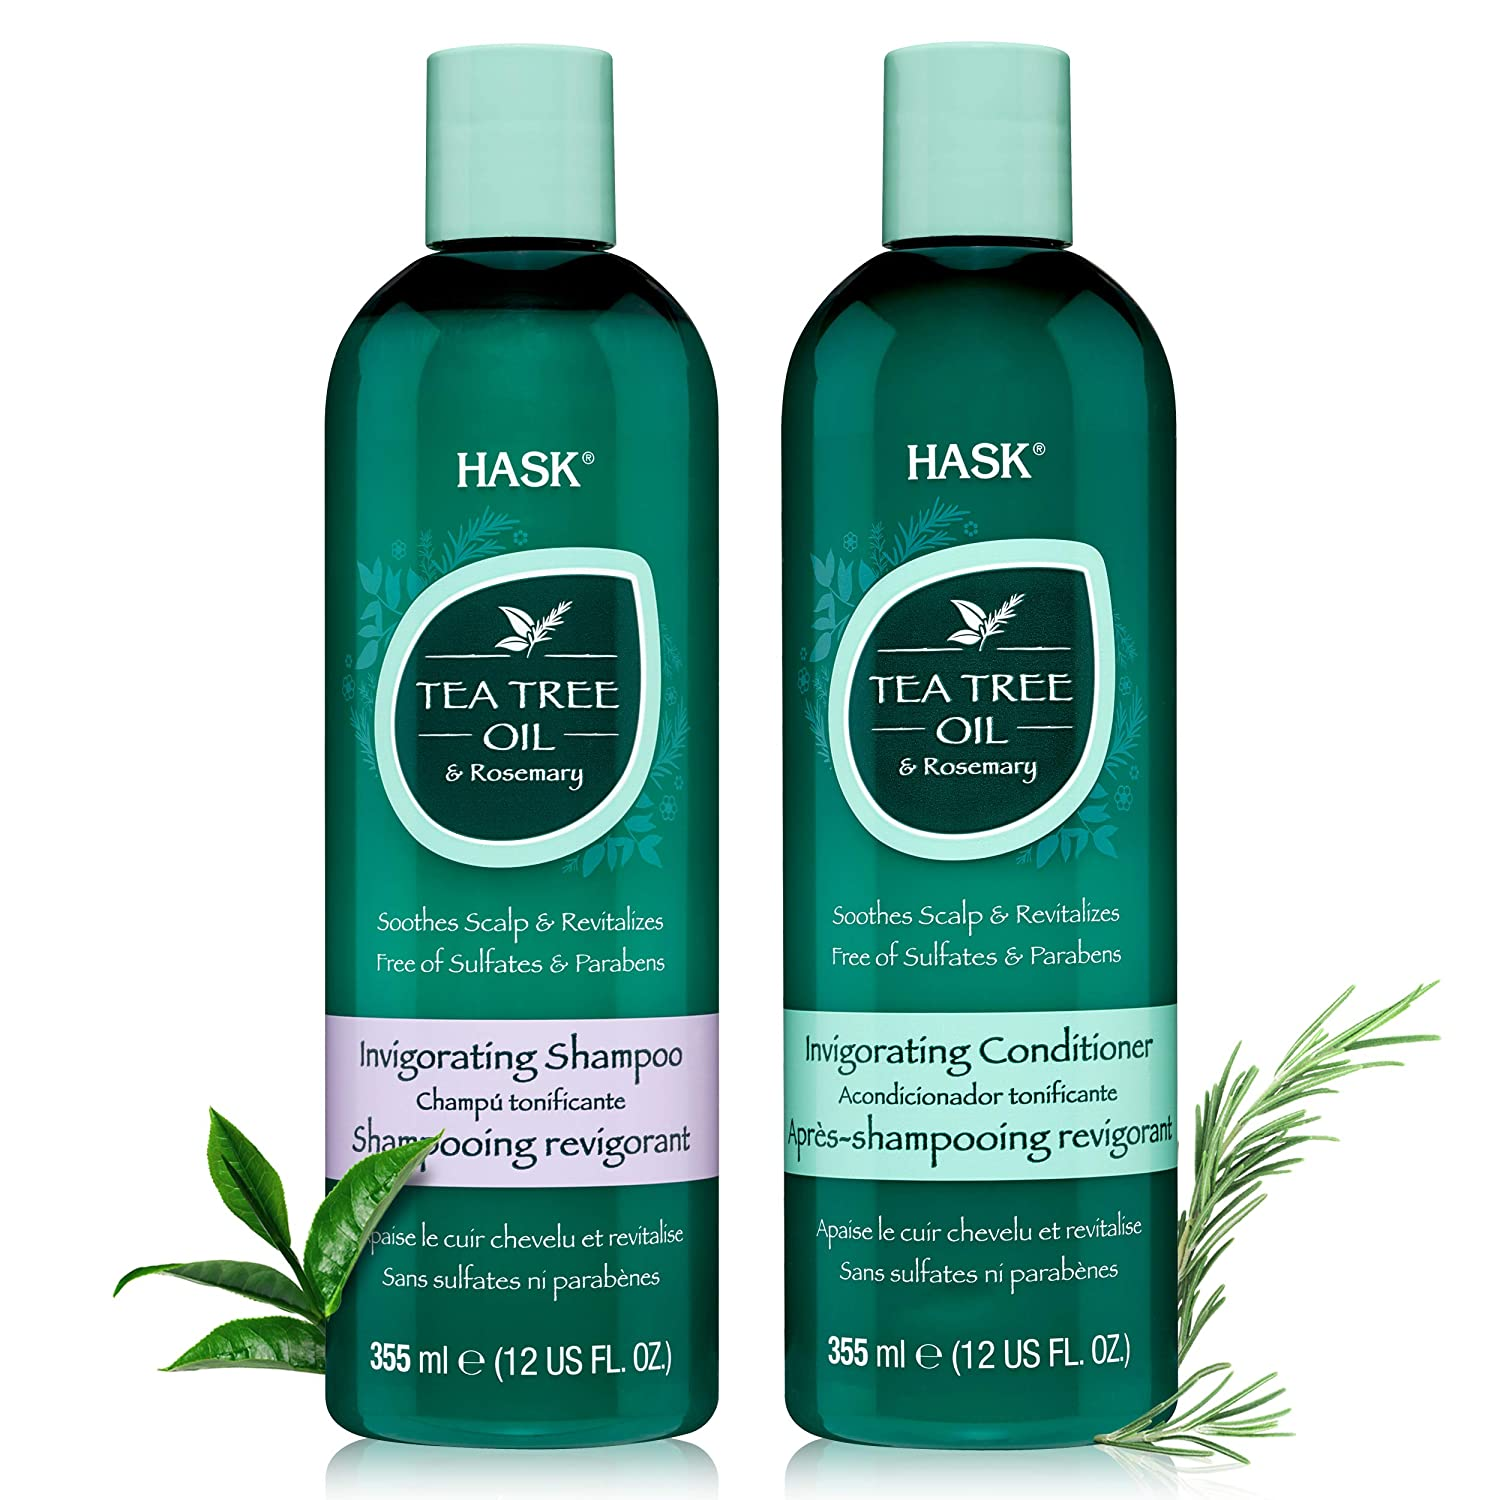 Hask Tea Tree Oil